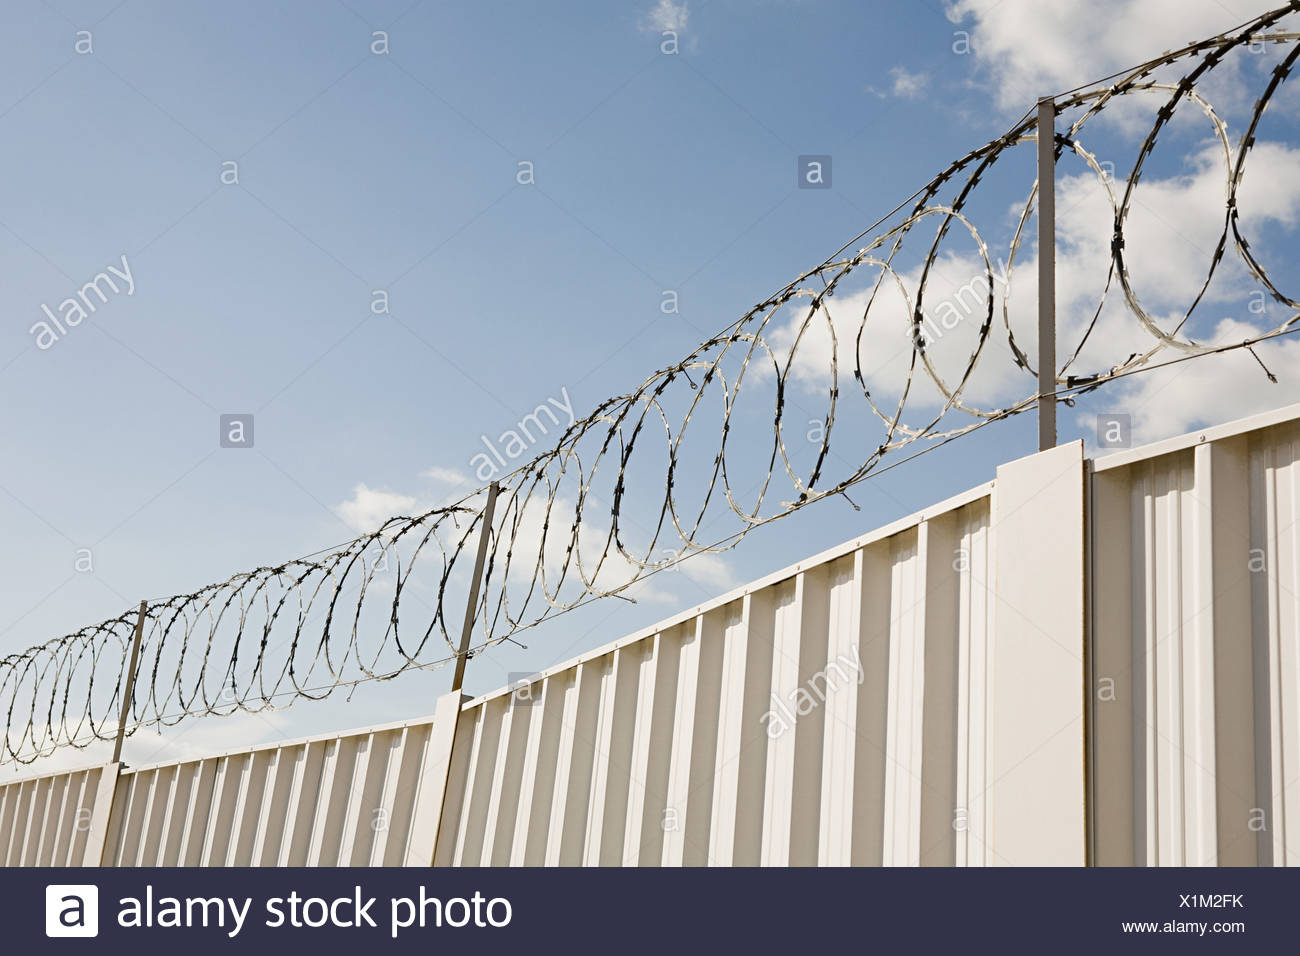 Barbed wire and a fence - Stock Image